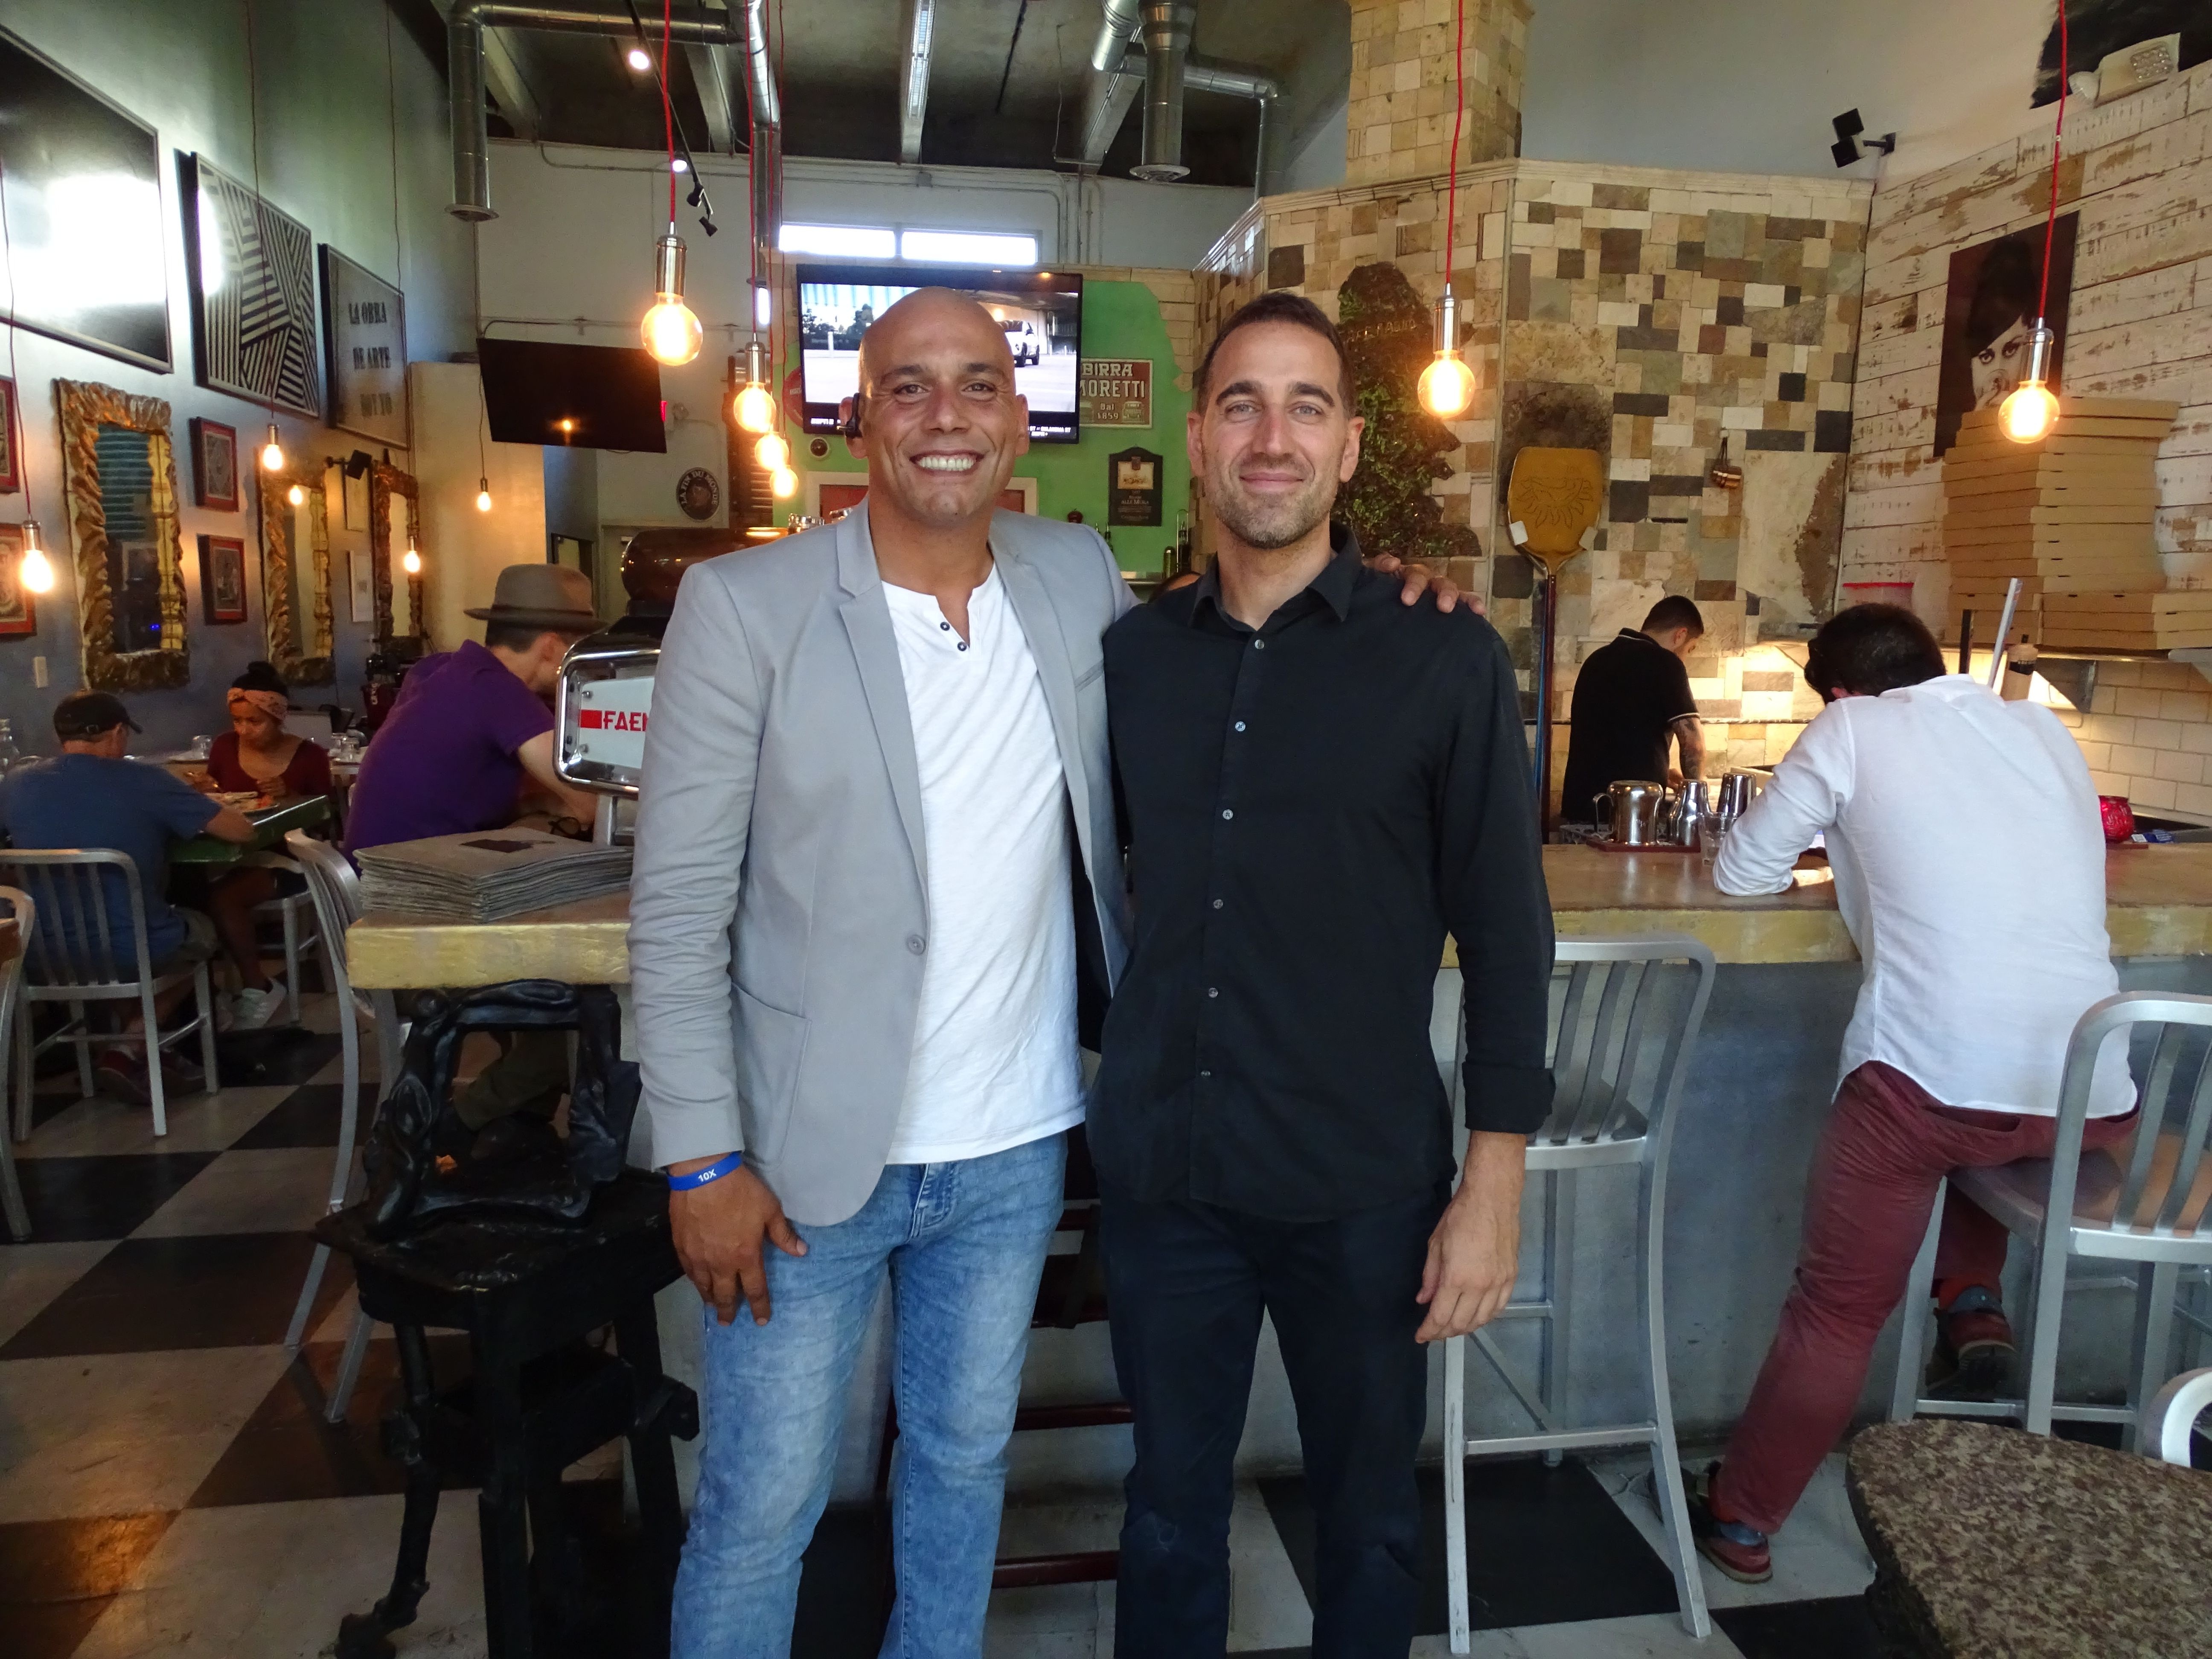 Alaa Harazin Launches A Restaurant Review TV Show On Comcast South Florida